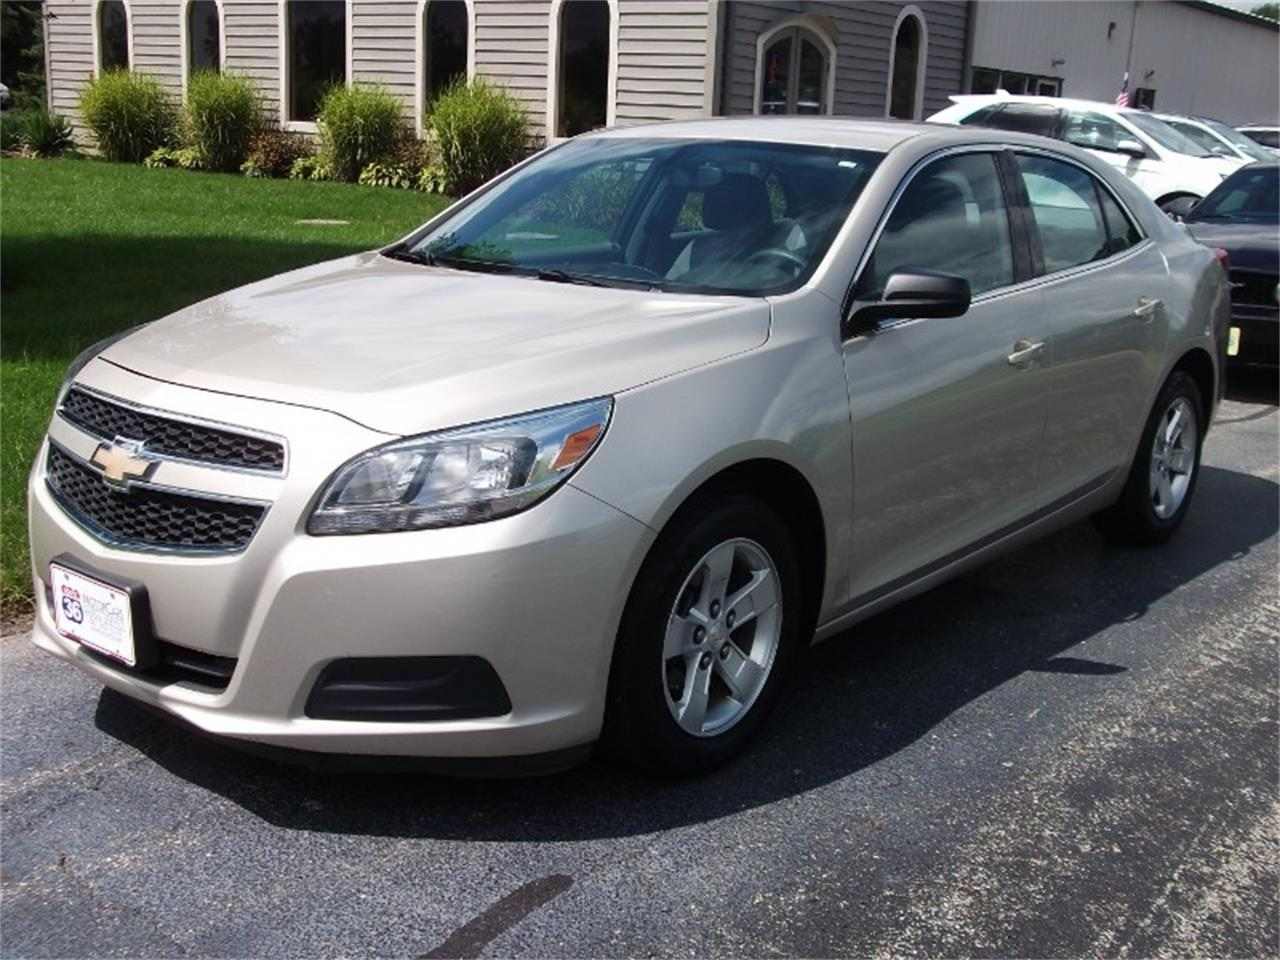 2013 Chevrolet Malibu (CC-1152298) for sale in Dublin, Ohio